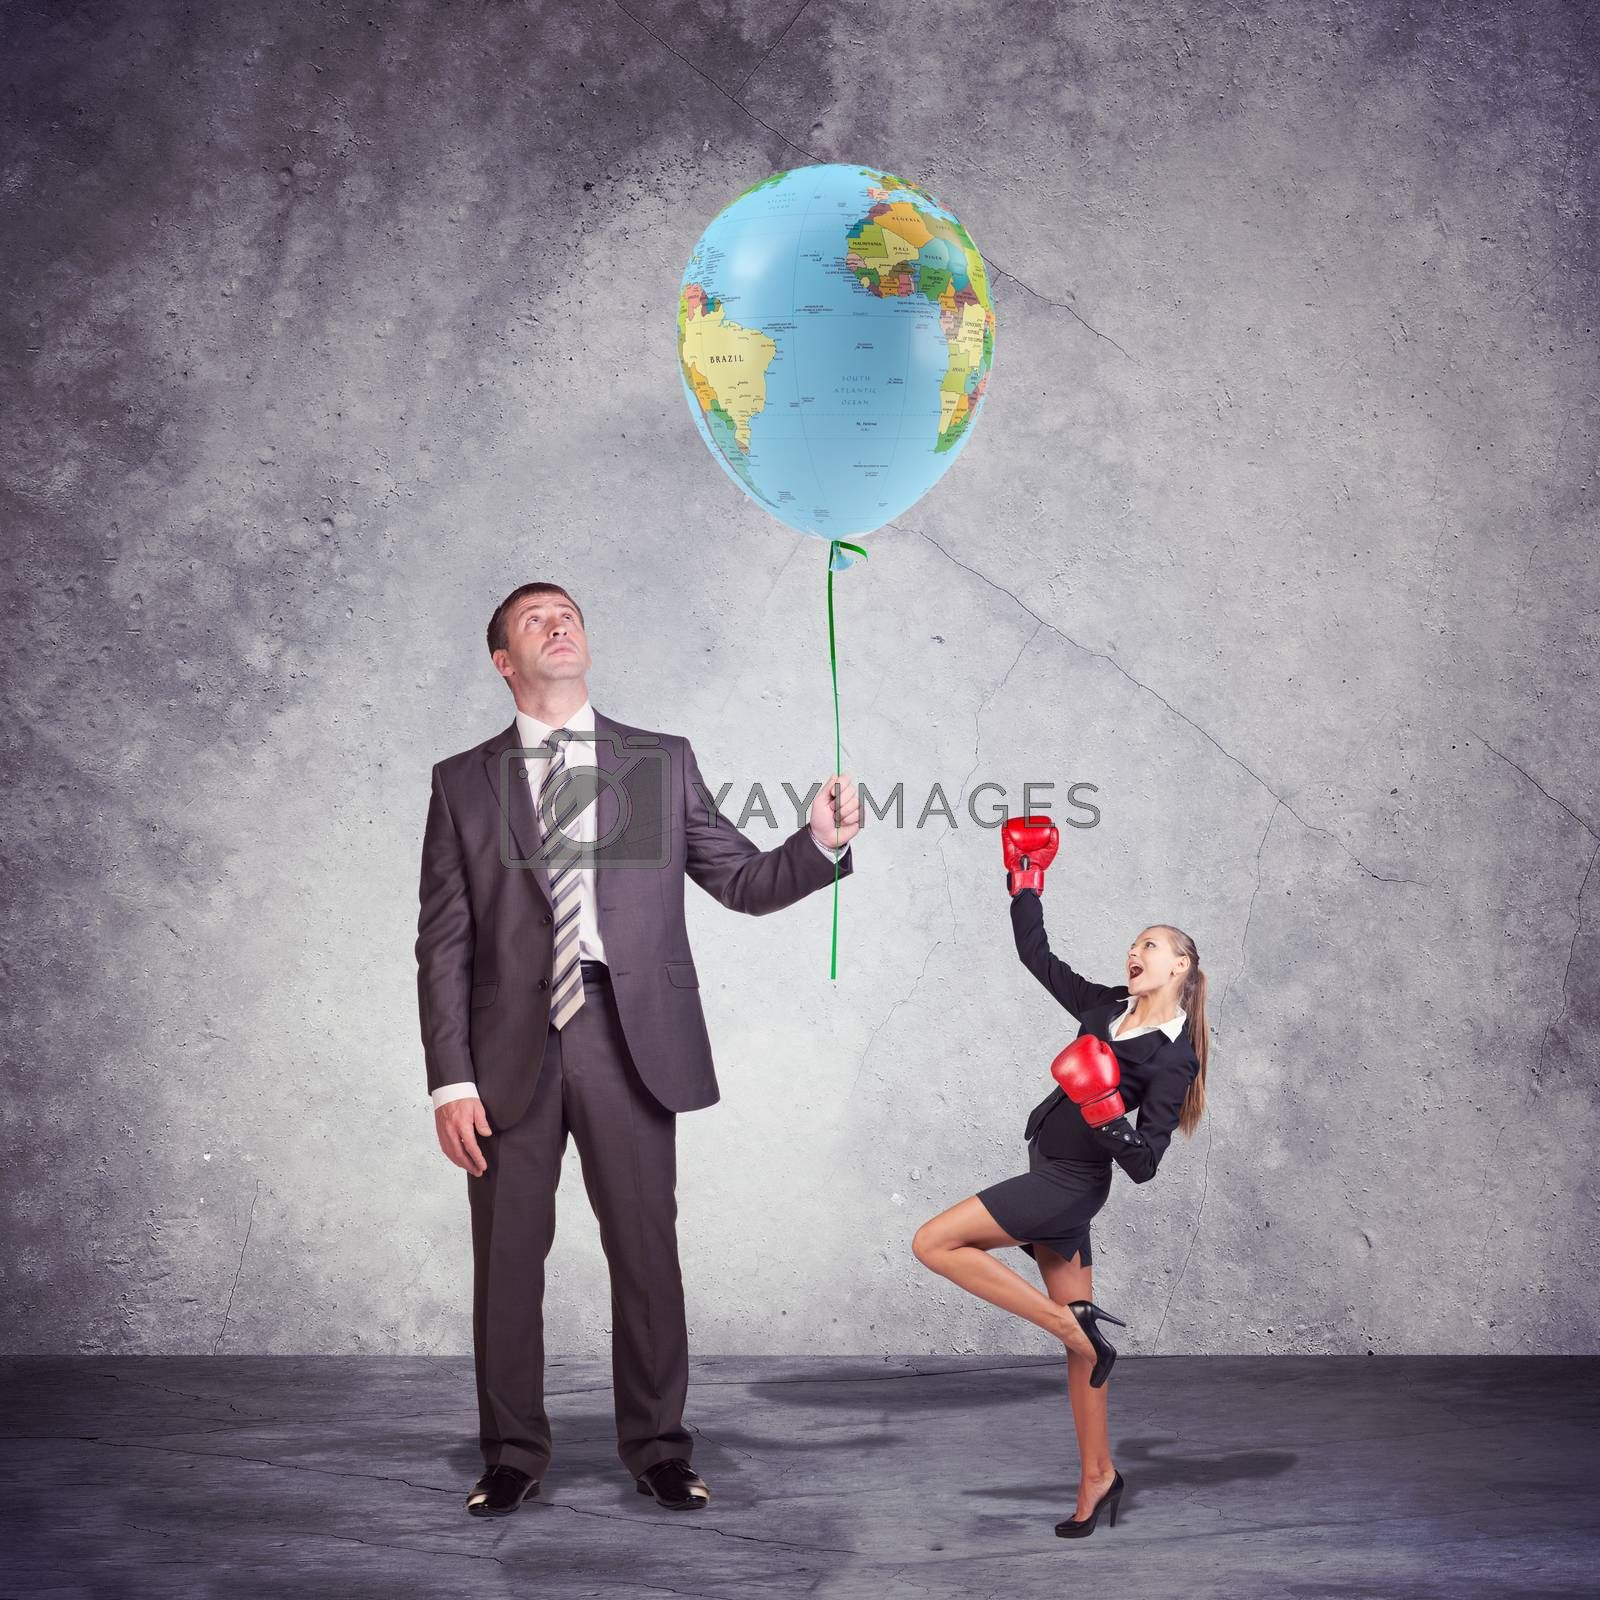 Conceptual Businessman Holding and Looking at the Balloon, with World Map Print, with a Small Businesswoman Posing in Boxing Gloves on the Side. Captured in Studio with Weathered Wall Background